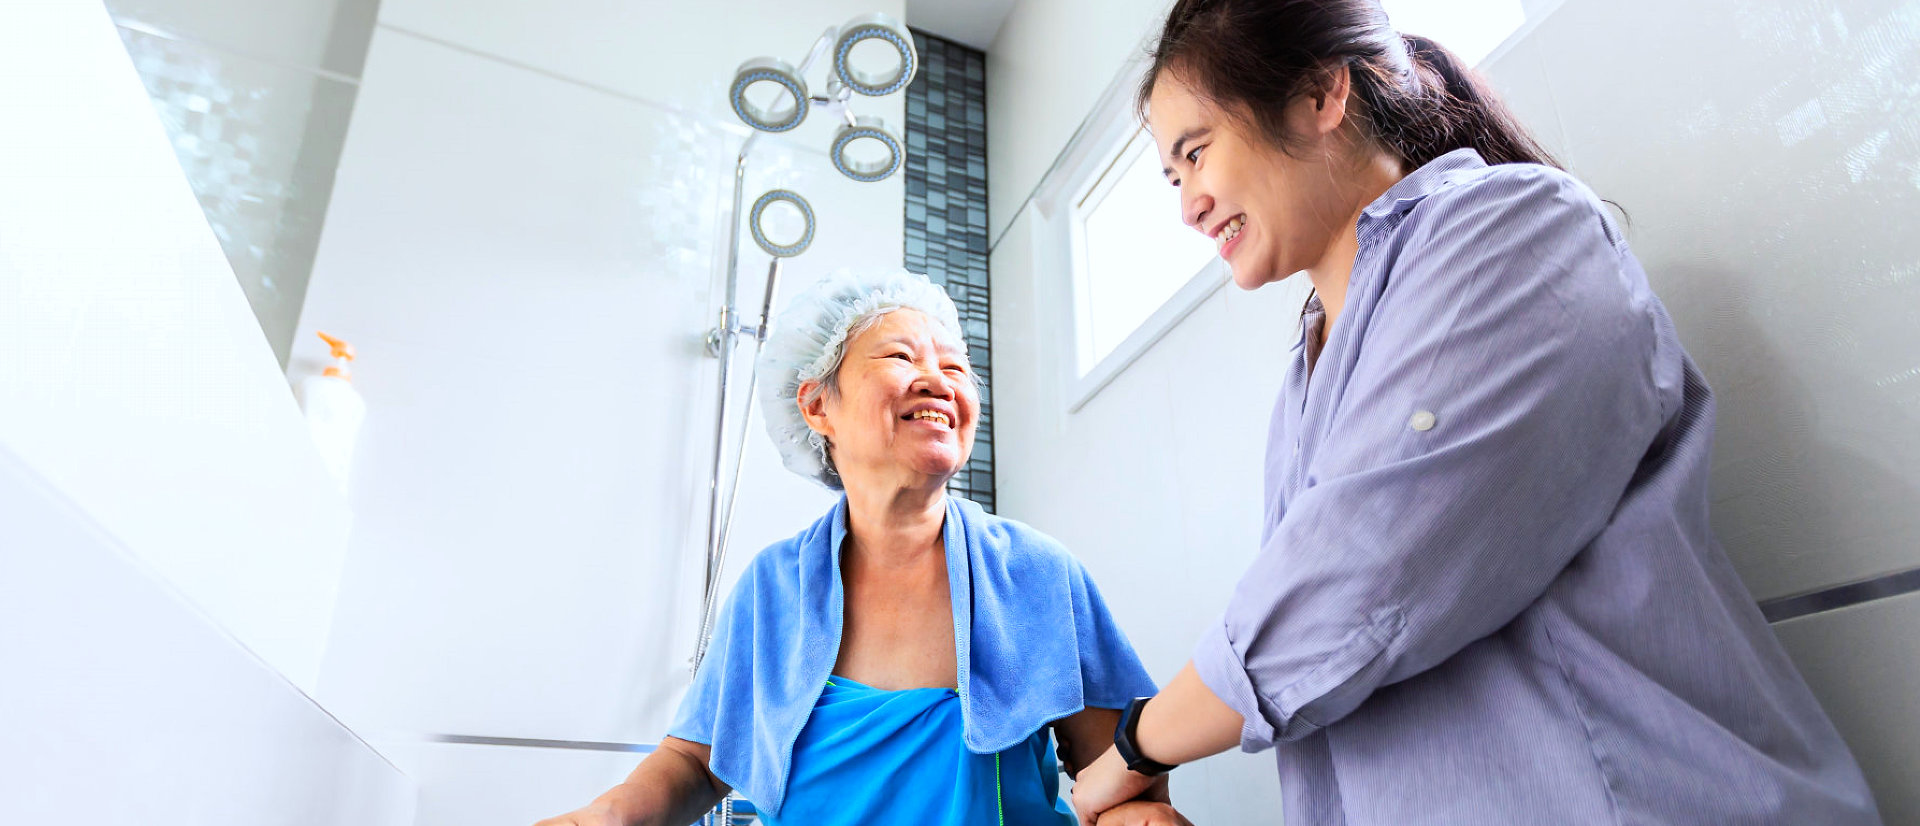 senior woman getting help from caregiver